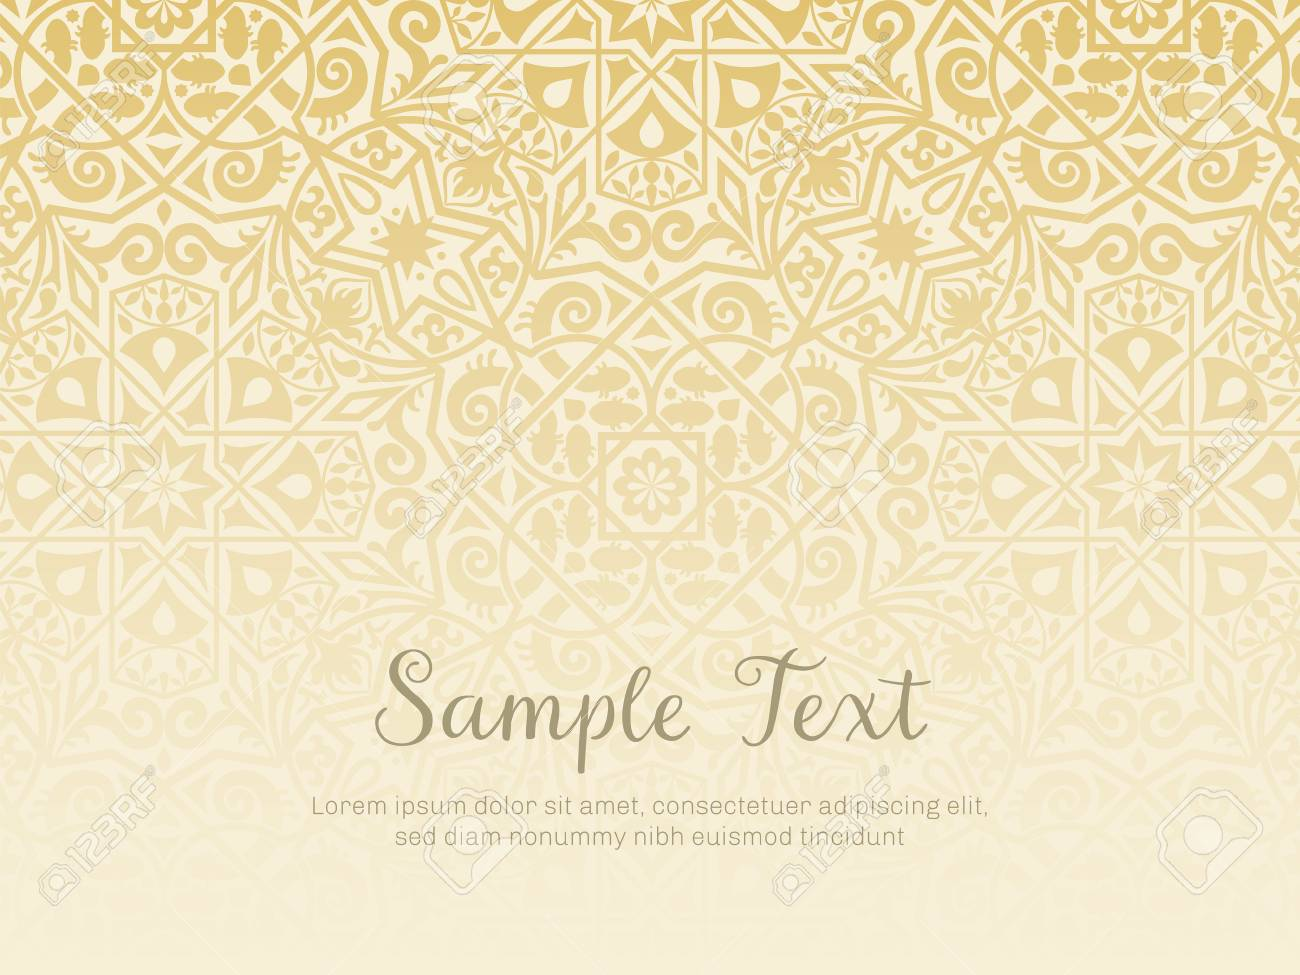 Background Design In Arabesque Style Gradual Texture Perfect